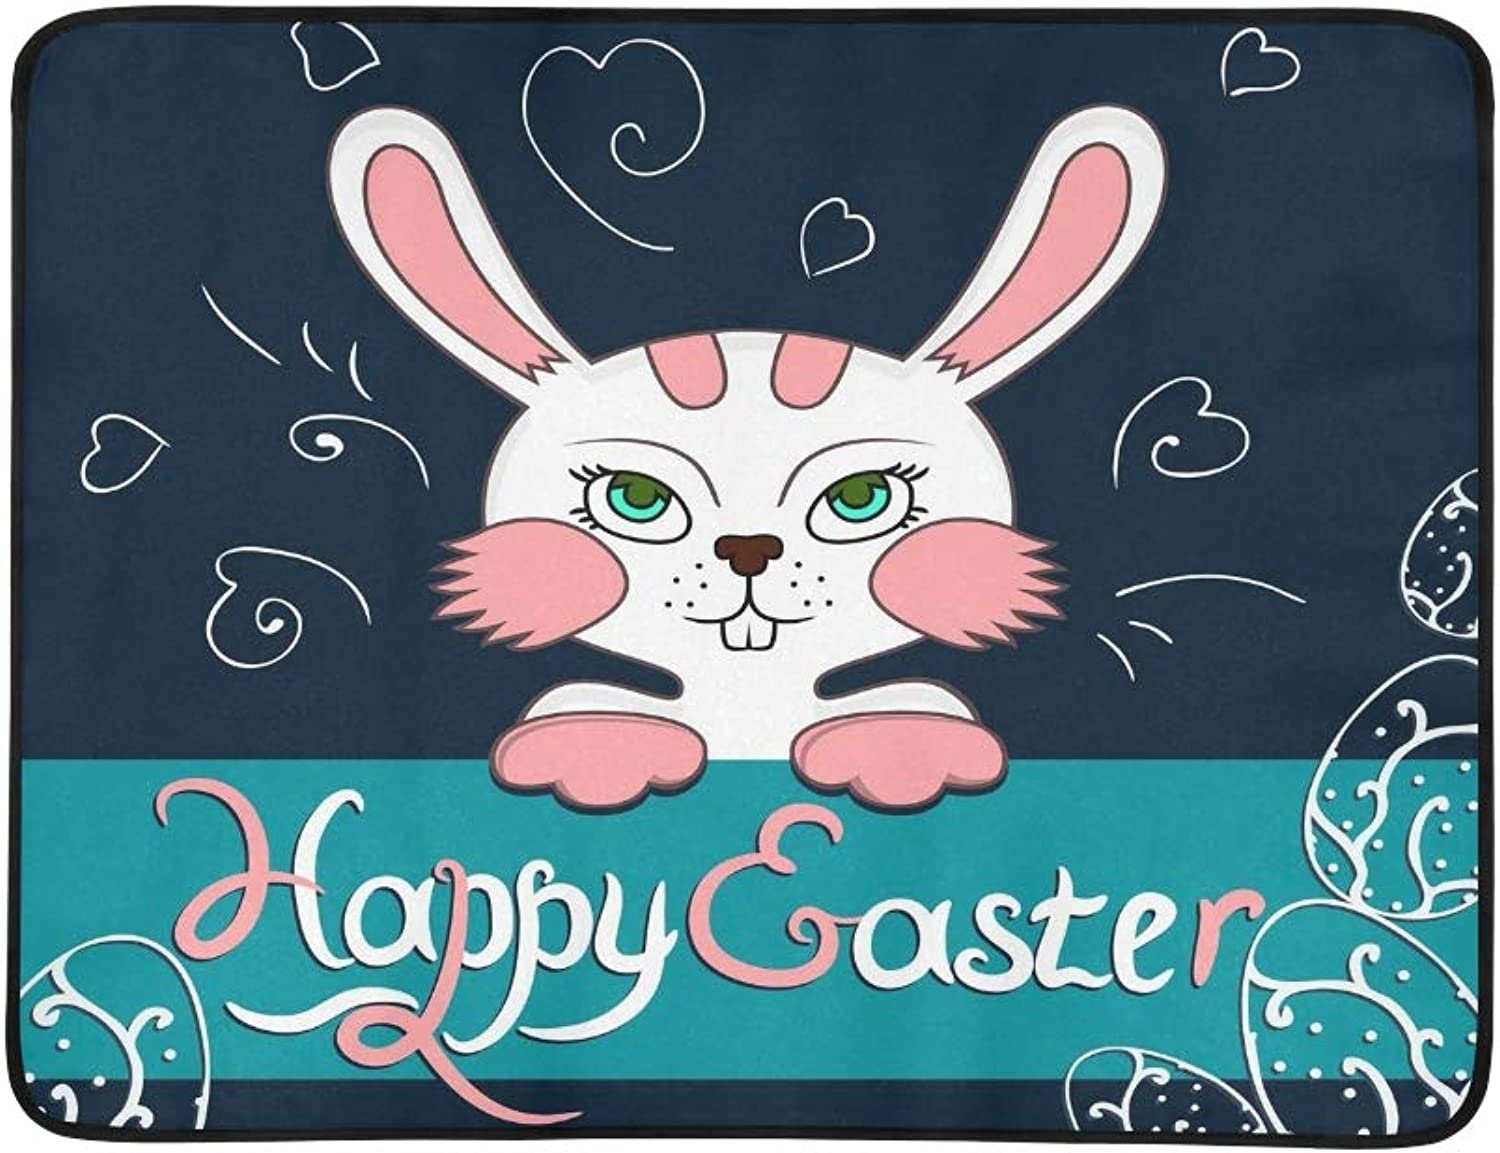 colorful Happy Easter Greeting Card Bunny Portable and Foldable Blanket Mat 60x78 Inch Handy Mat for Camping Picnic Beach Indoor Outdoor Travel